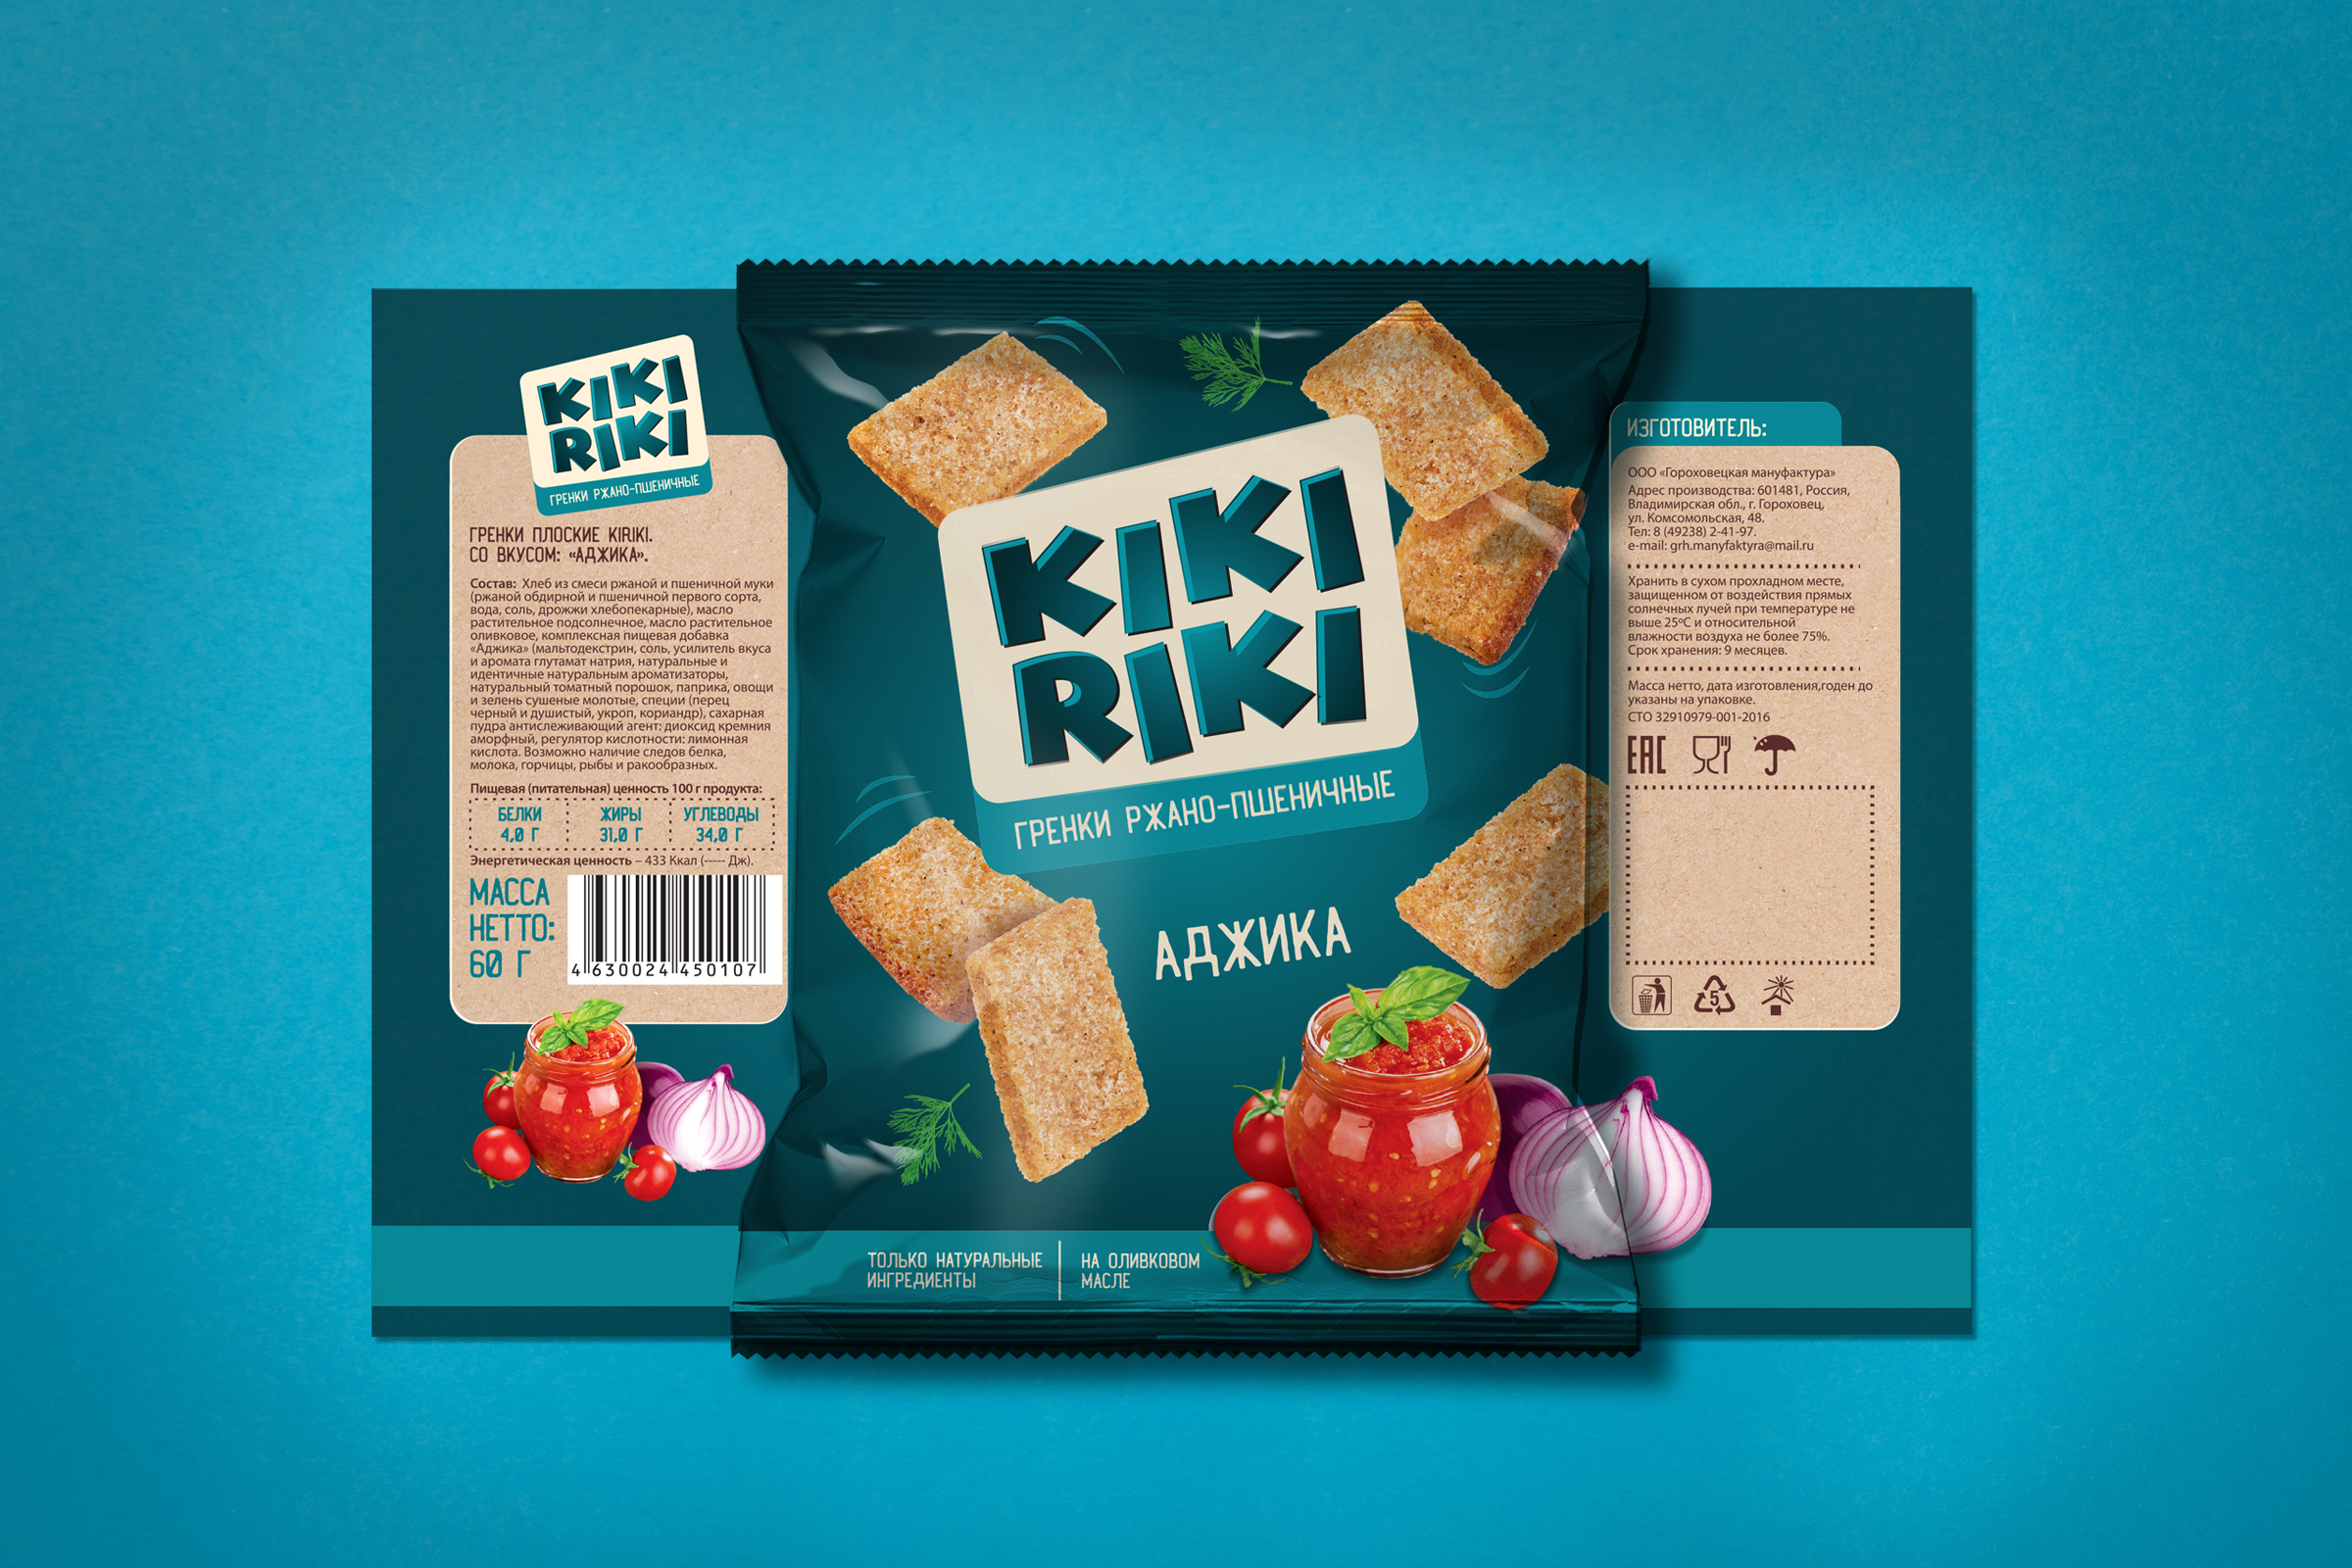 Consumer Graphic Packaging Design with Large Crispy Croutons Products being Centre Stage  / World Brand & Packaging Design Society